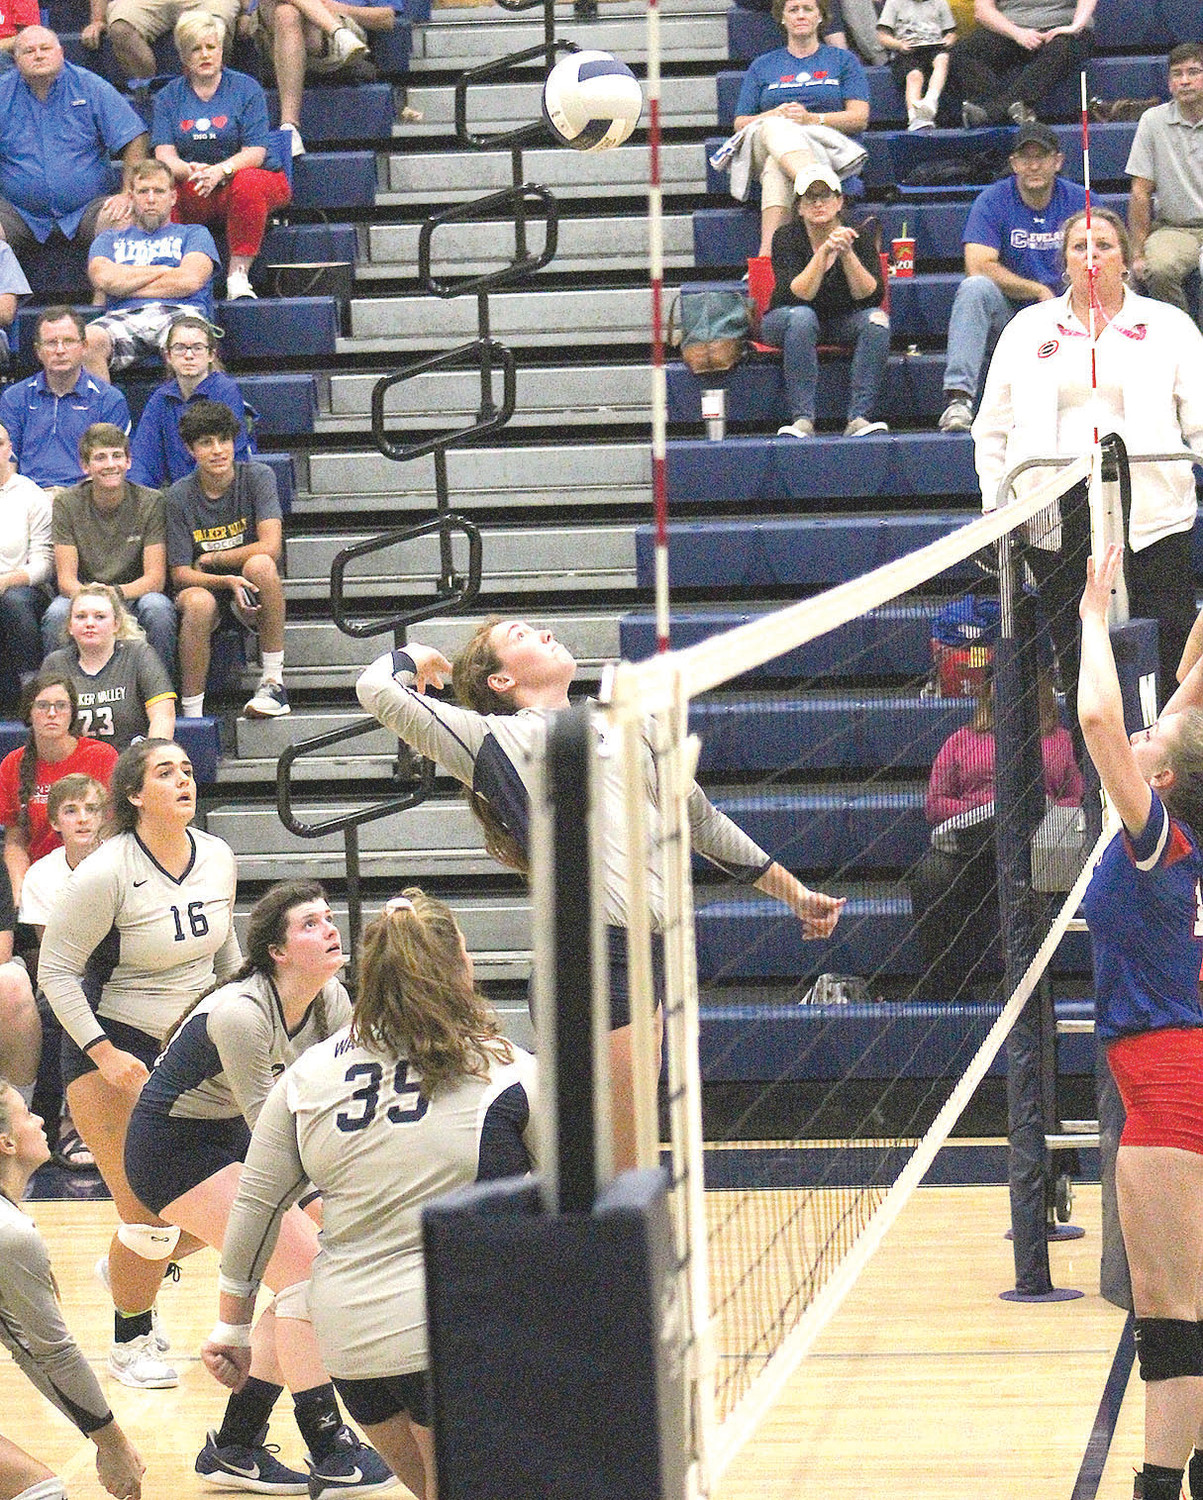 WALKER VALLEY'S Kaylee Hughes eyes the ball as she goes up for a kill attempt against Cleveland in a district 5-3A volleyball matchup Tuesday, at Walker Valley.